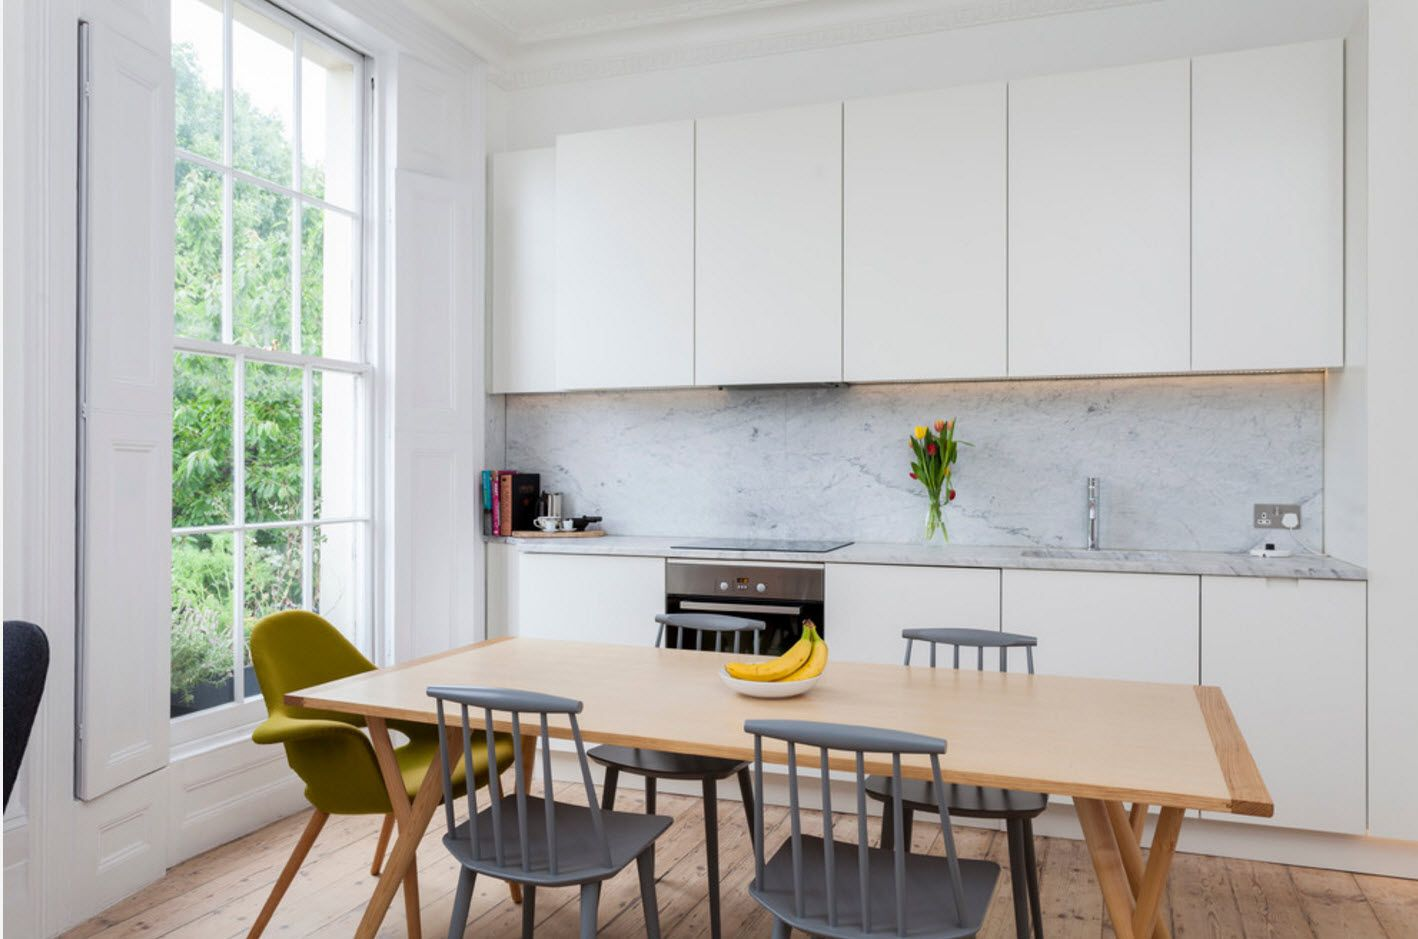 Calm and relazing atmosphere at the Scndinavian styled kitchen